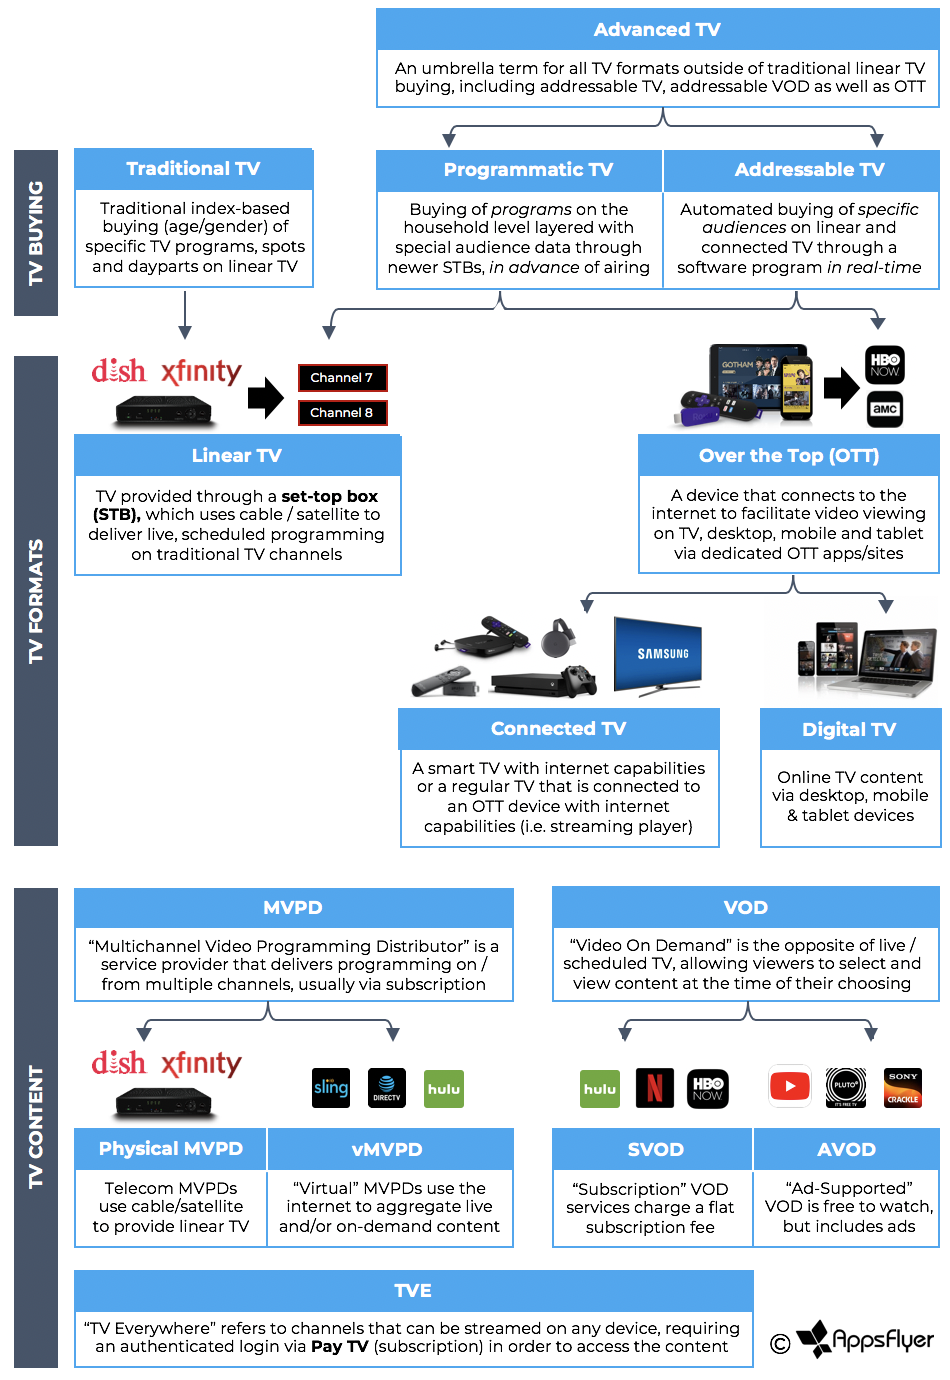 Introduction to Advanced TV: Key Trends in the OTT Market - AppsFlyer